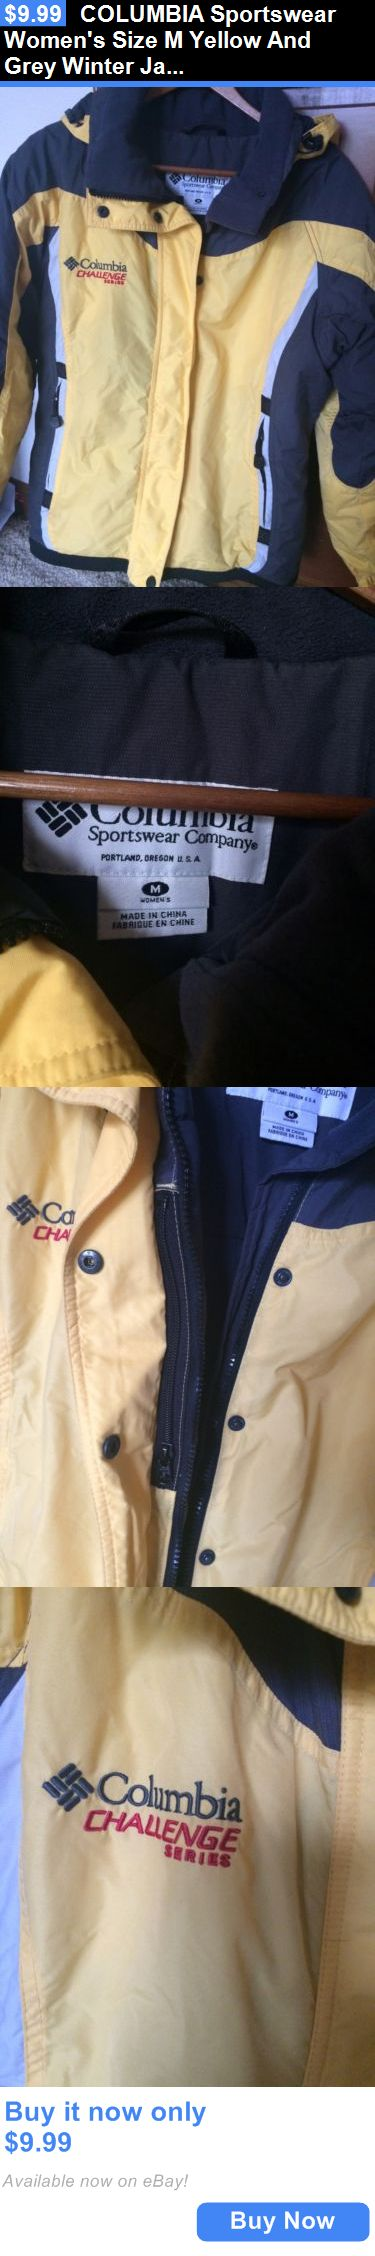 Women Coats And Jackets: Columbia Sportswear Womens Size M Yellow And Grey Winter Jacket Coat. BUY IT NOW ONLY: $9.99